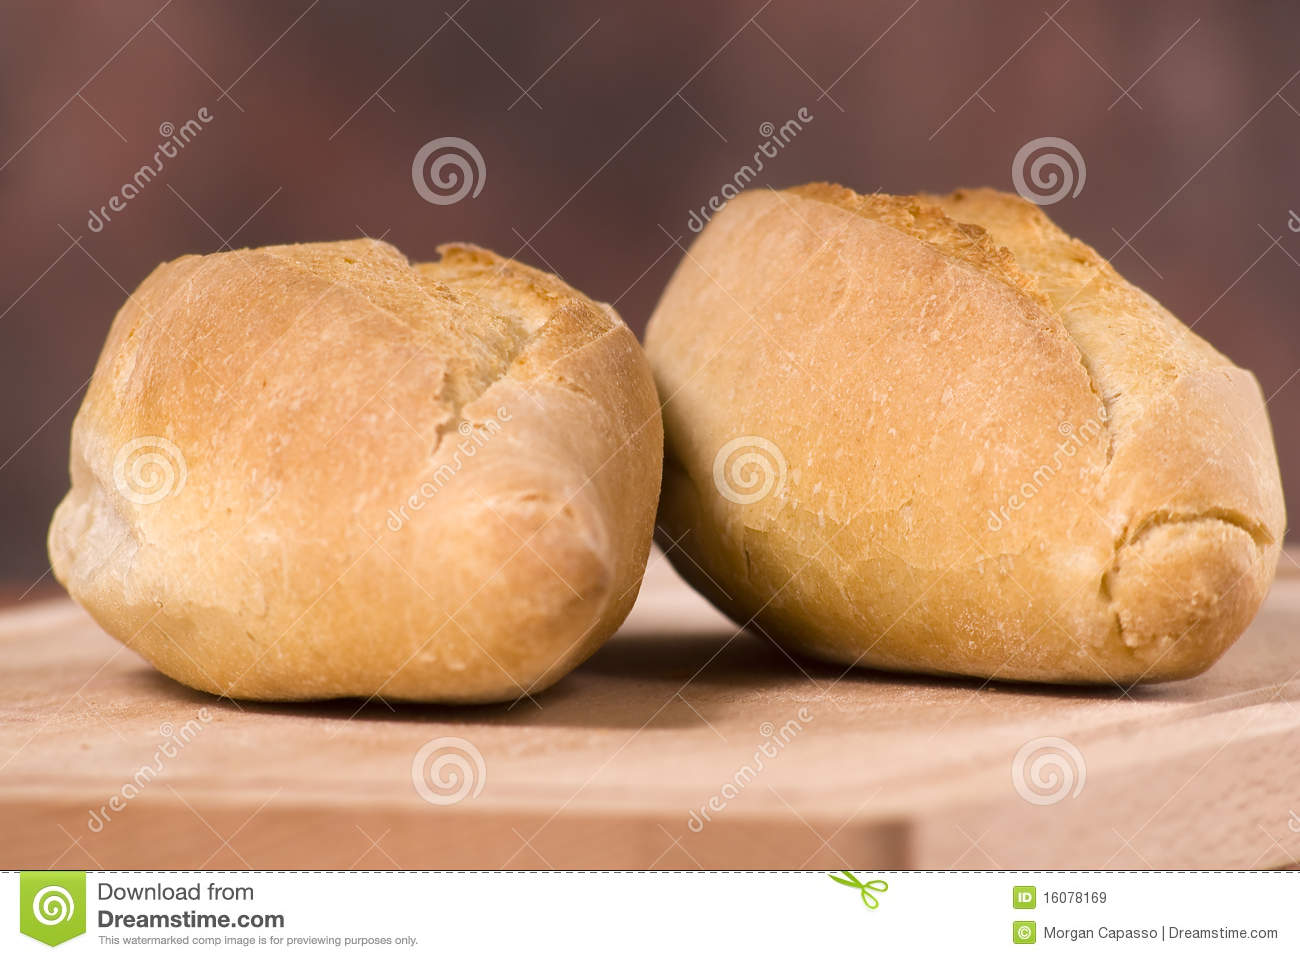 2 loaves of bread